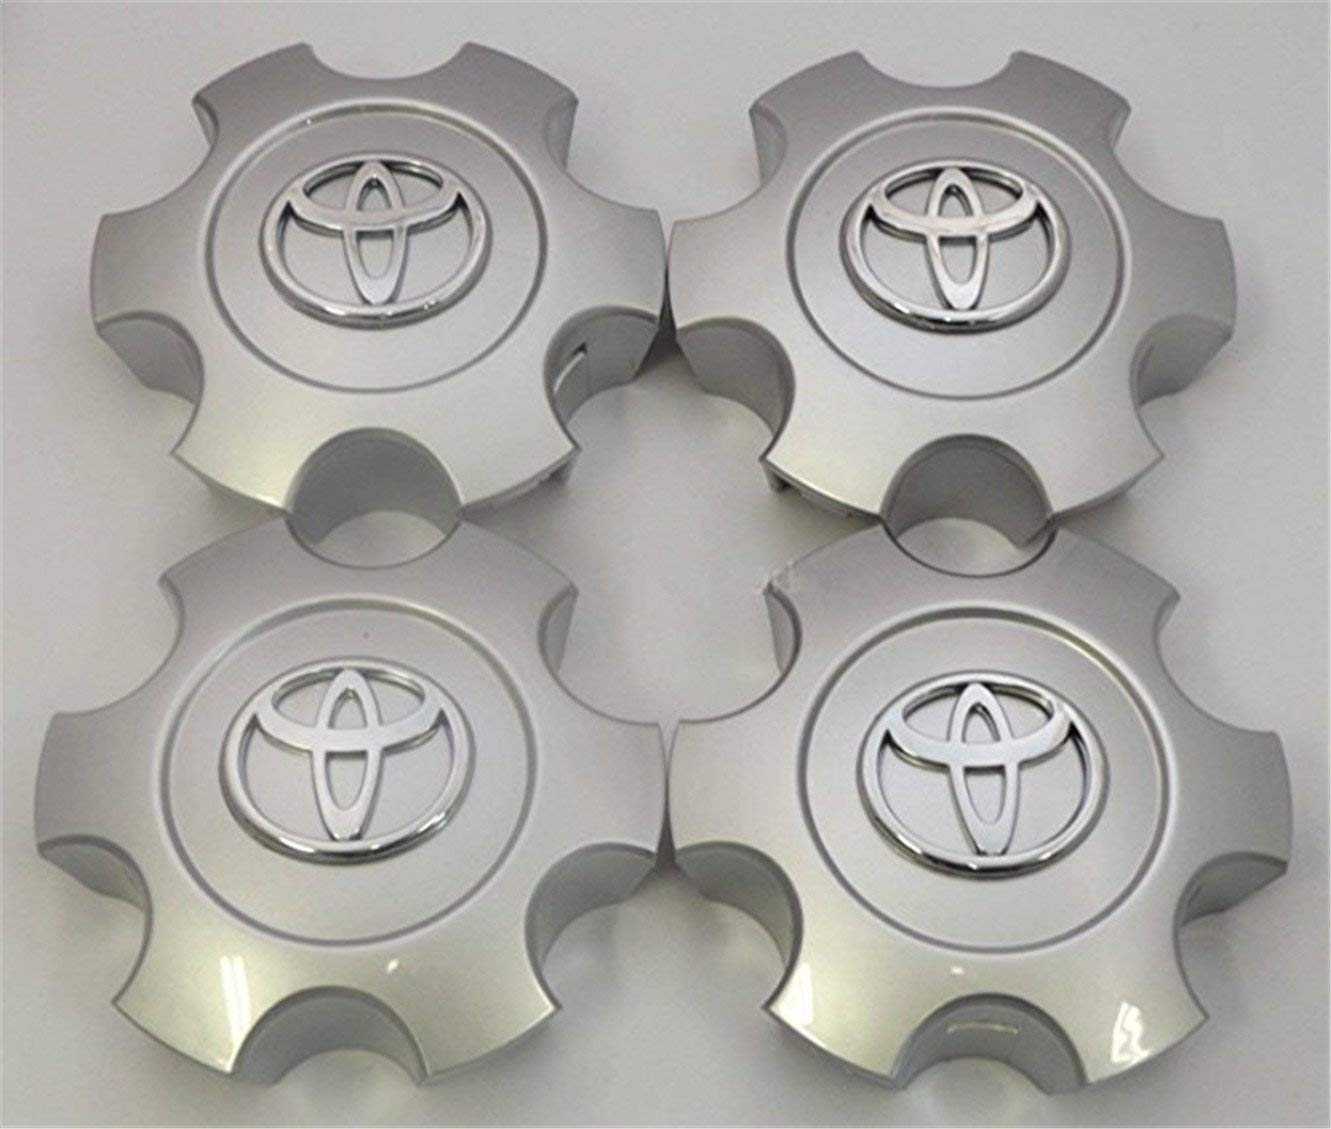 Set of 4 New Replacement 2003 2004 2005 2006 2007 Tundra Sequoia Silver Wheel Center Hub Caps 56069440 US Fast Shipment